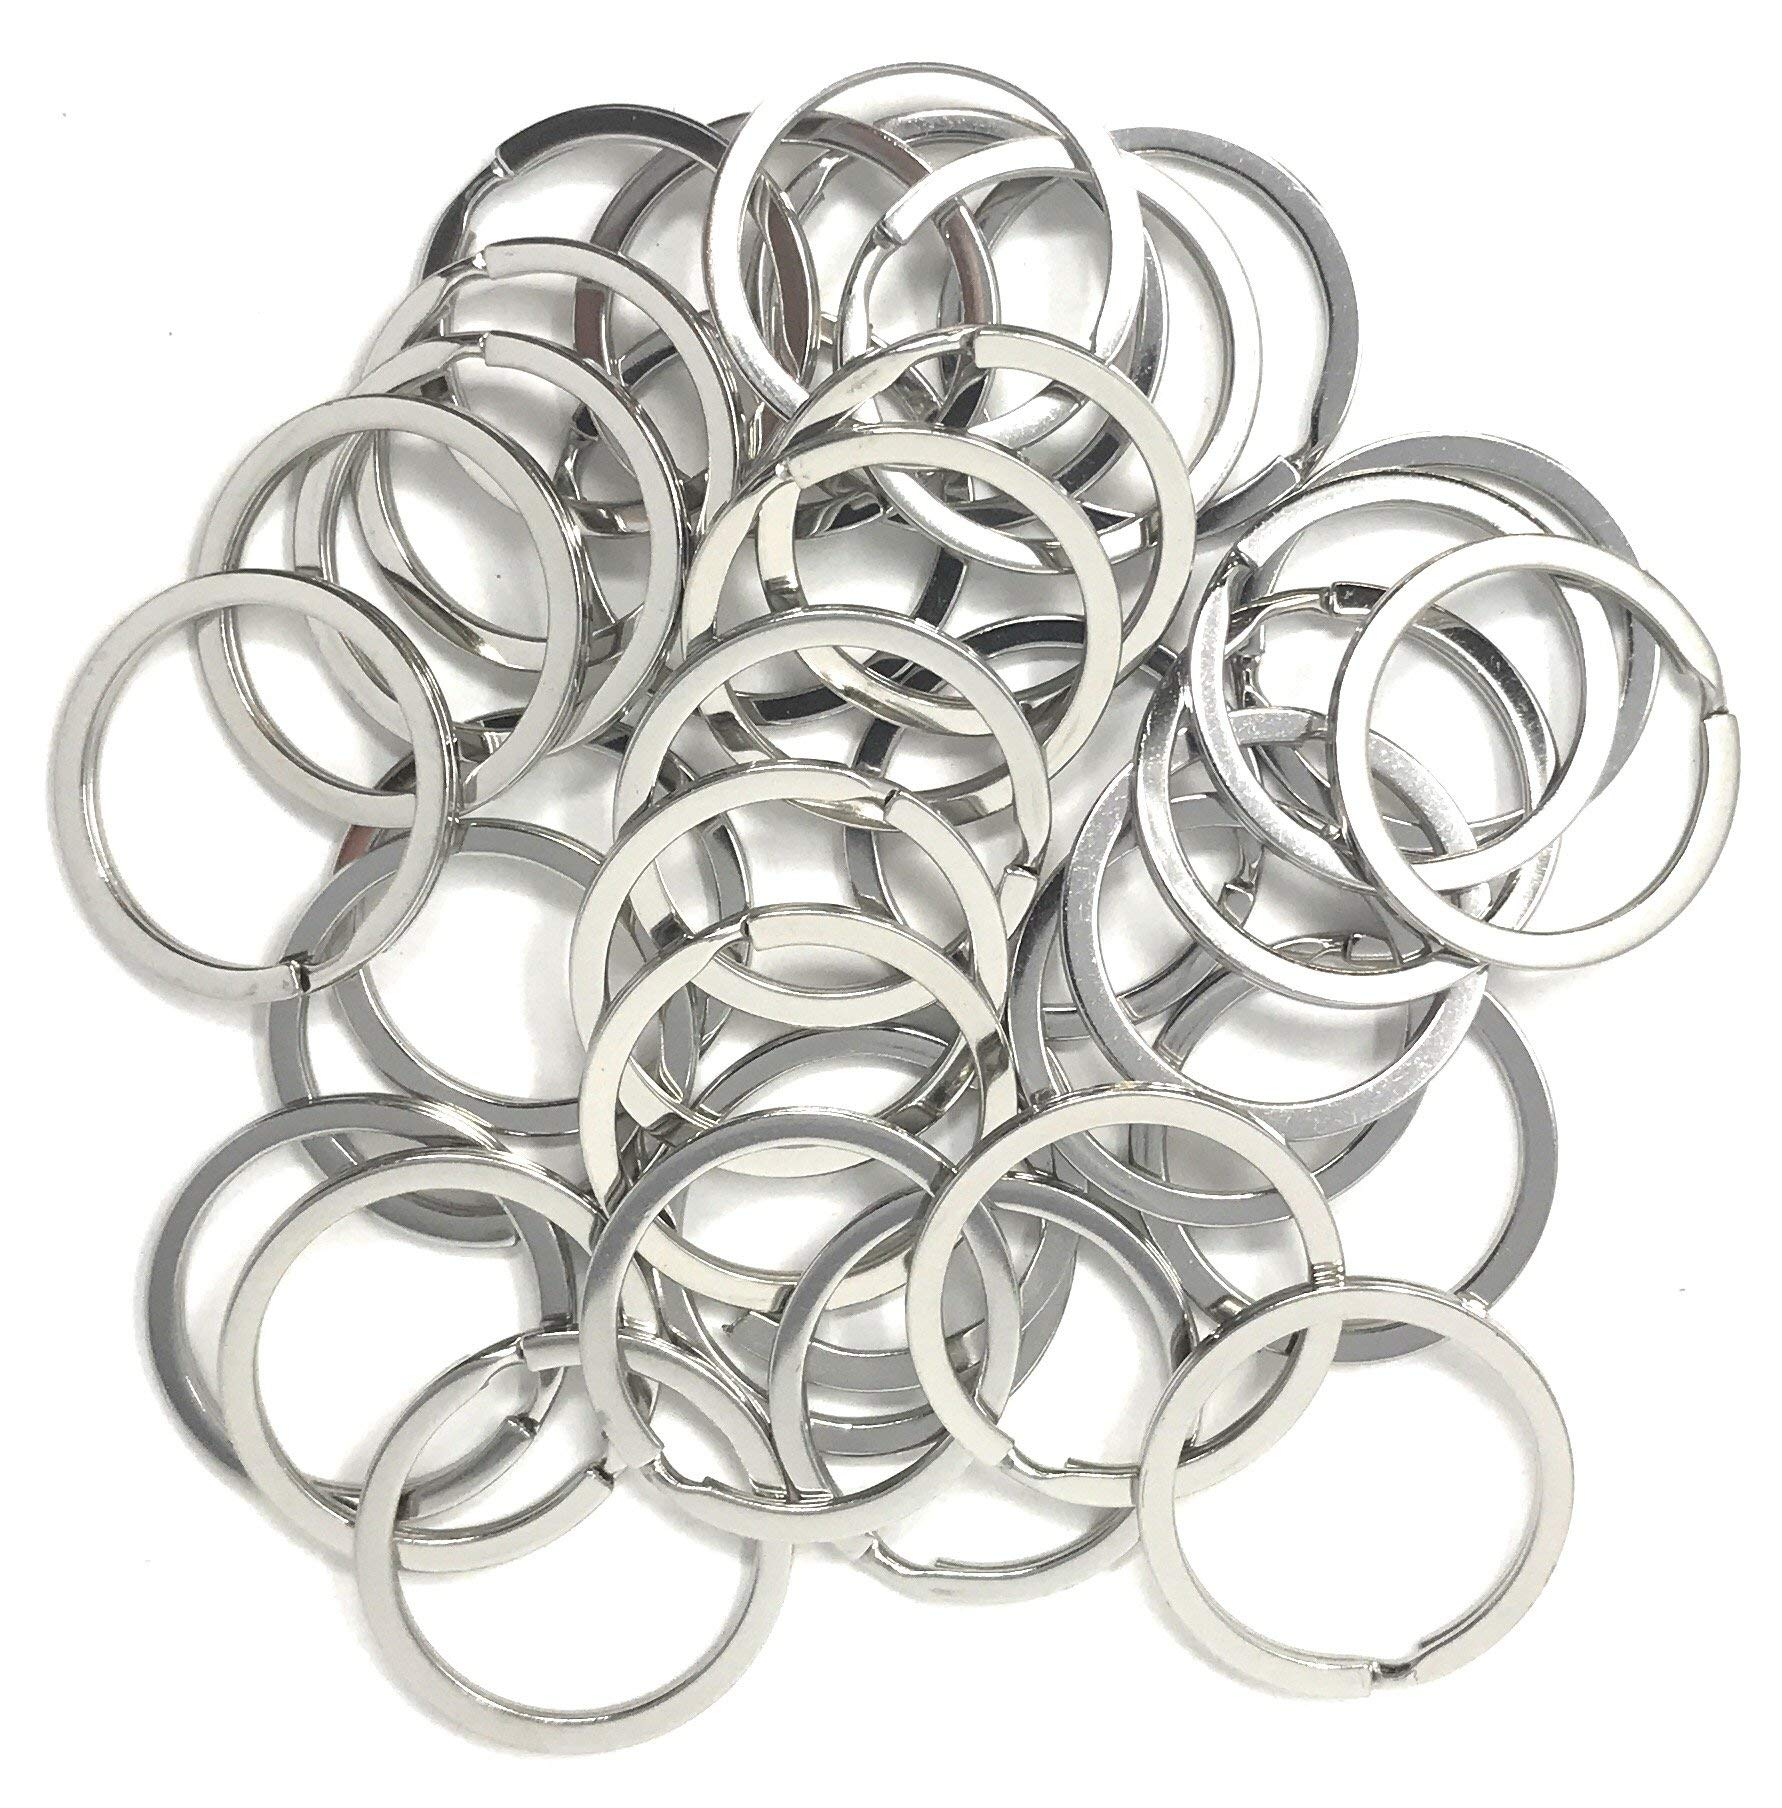 1000 Bulk Flat 1.25'' Large Stainless Steel Split Key Ring Findings / Jump Rings - Perfect for Jewelry Making Projects and Resale by Sea View Treasures